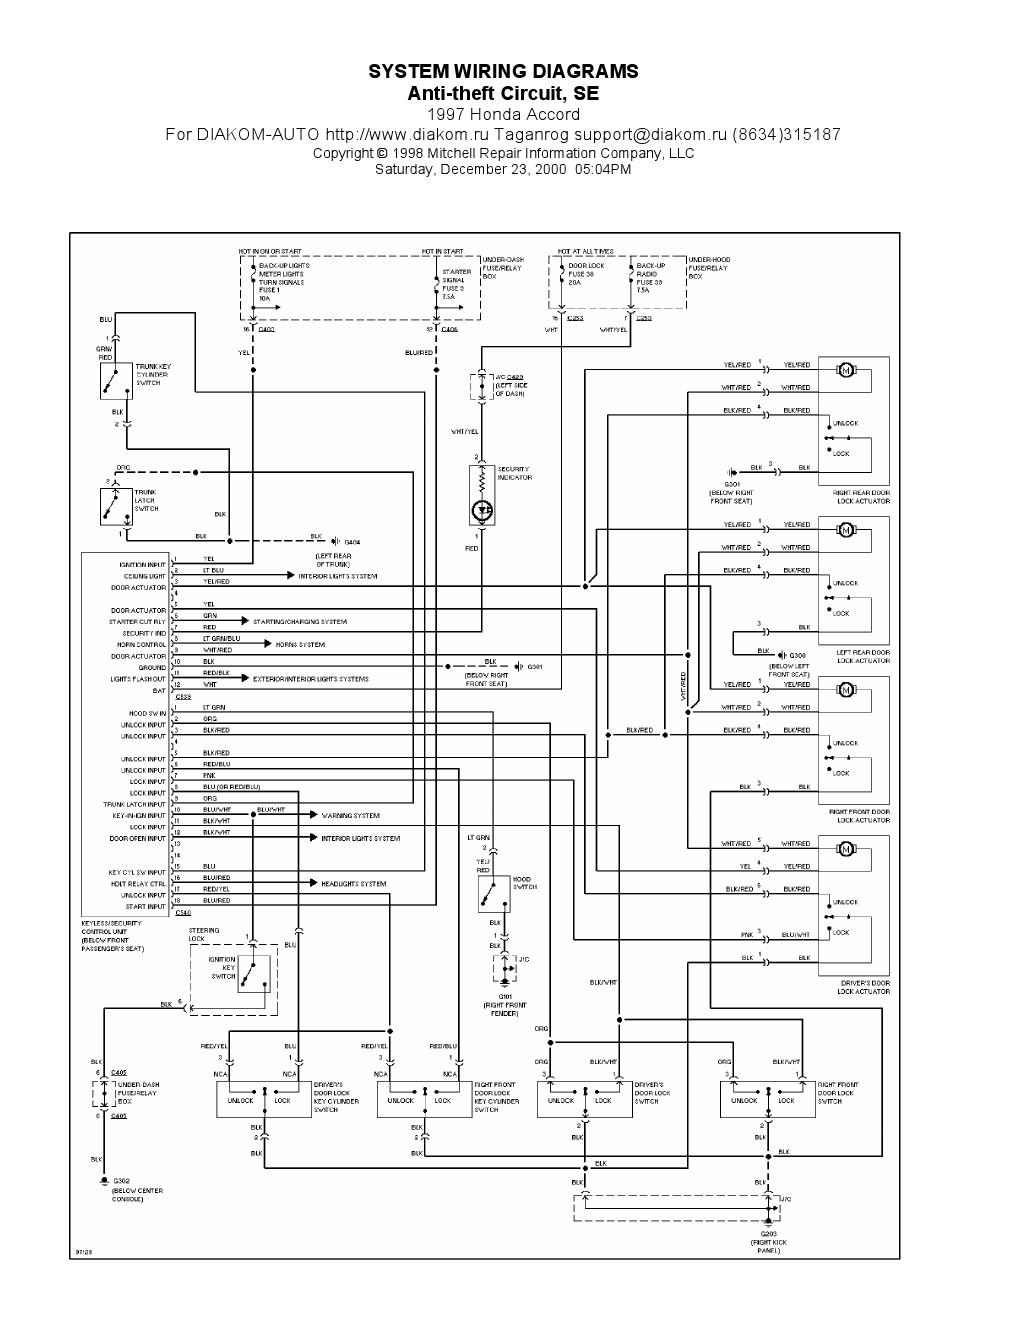 1996 honda accord ignition wiring diagram Download-Honda Wiring Diagrams Lovely 1994 Honda Accord Wiring Diagram & Honda Civic Ignition Wiring 14-i